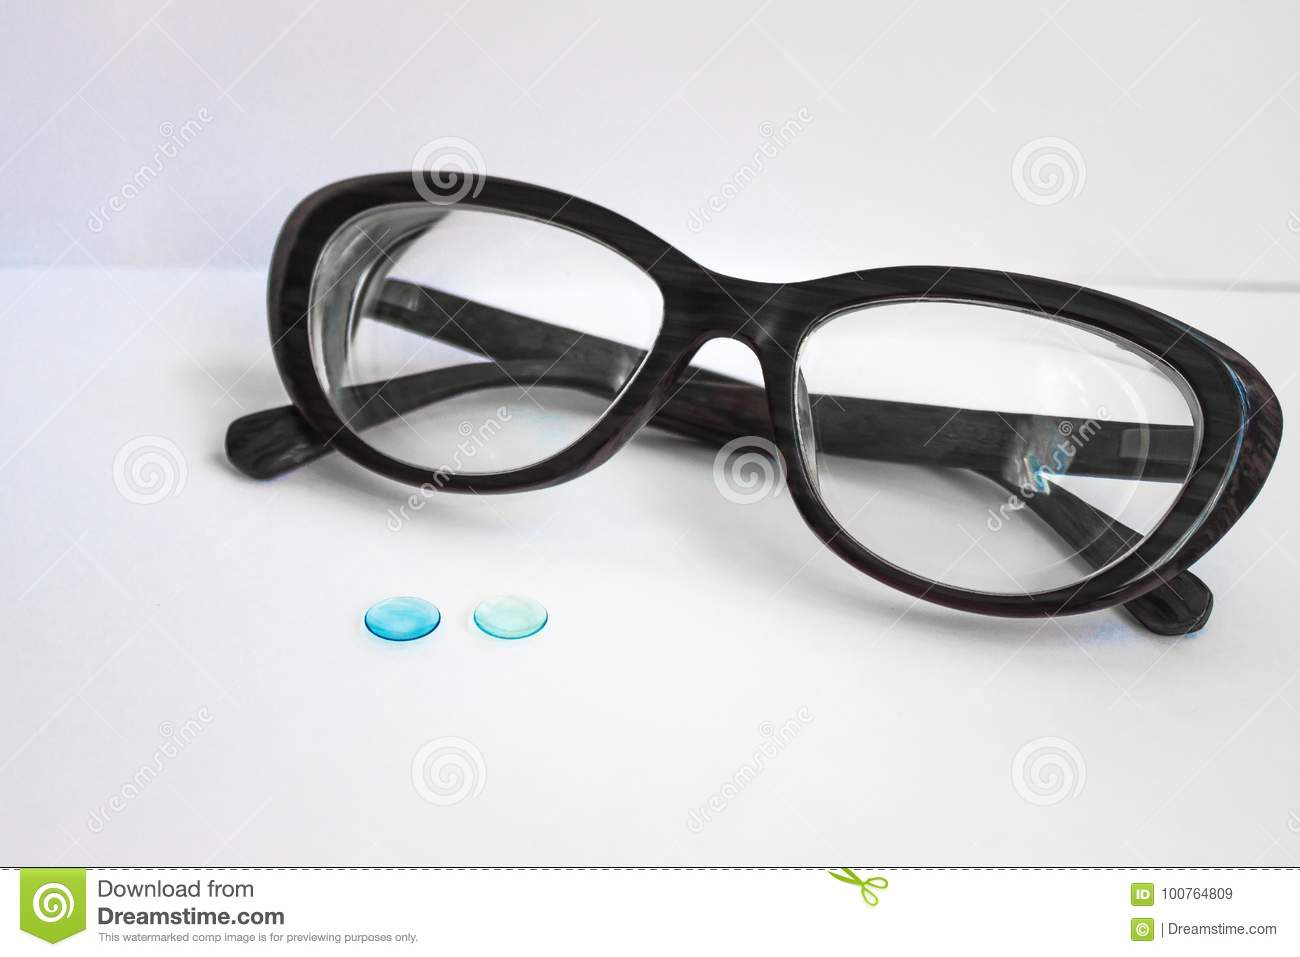 Glasses In A Black Frame And Lenses For The Eyes. Stock Image ...